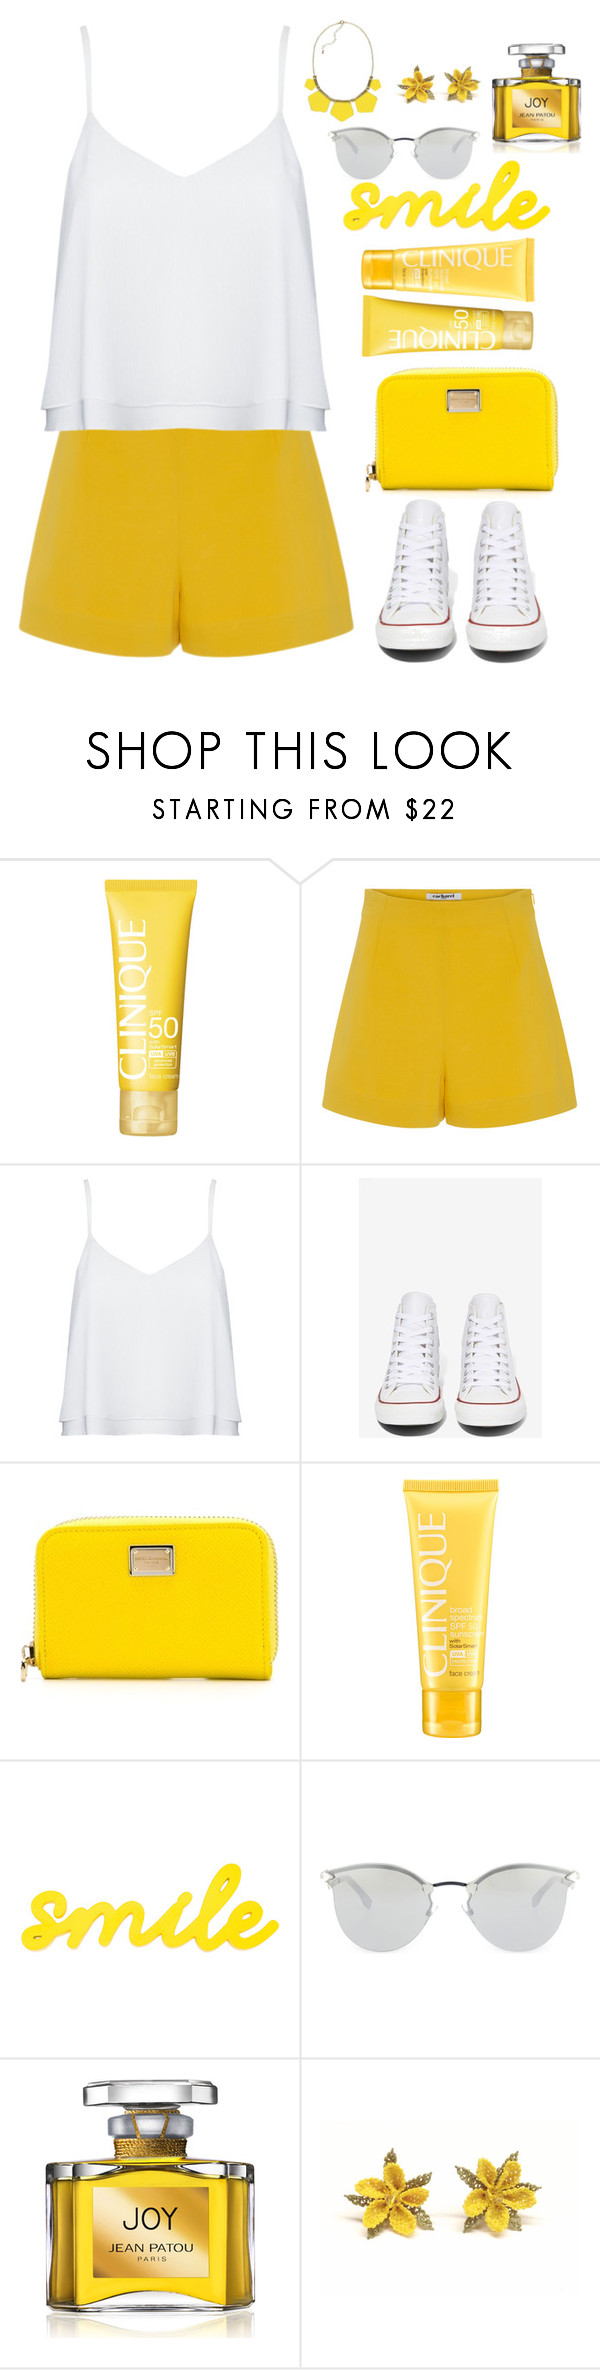 """Bez naslova #110"" by dzchocolatess ❤ liked on Polyvore featuring Clinique, Cacharel, Alice + Olivia, Converse, Dolce&Gabbana, Fendi, Jean Patou, women's clothing, women's fashion and women"